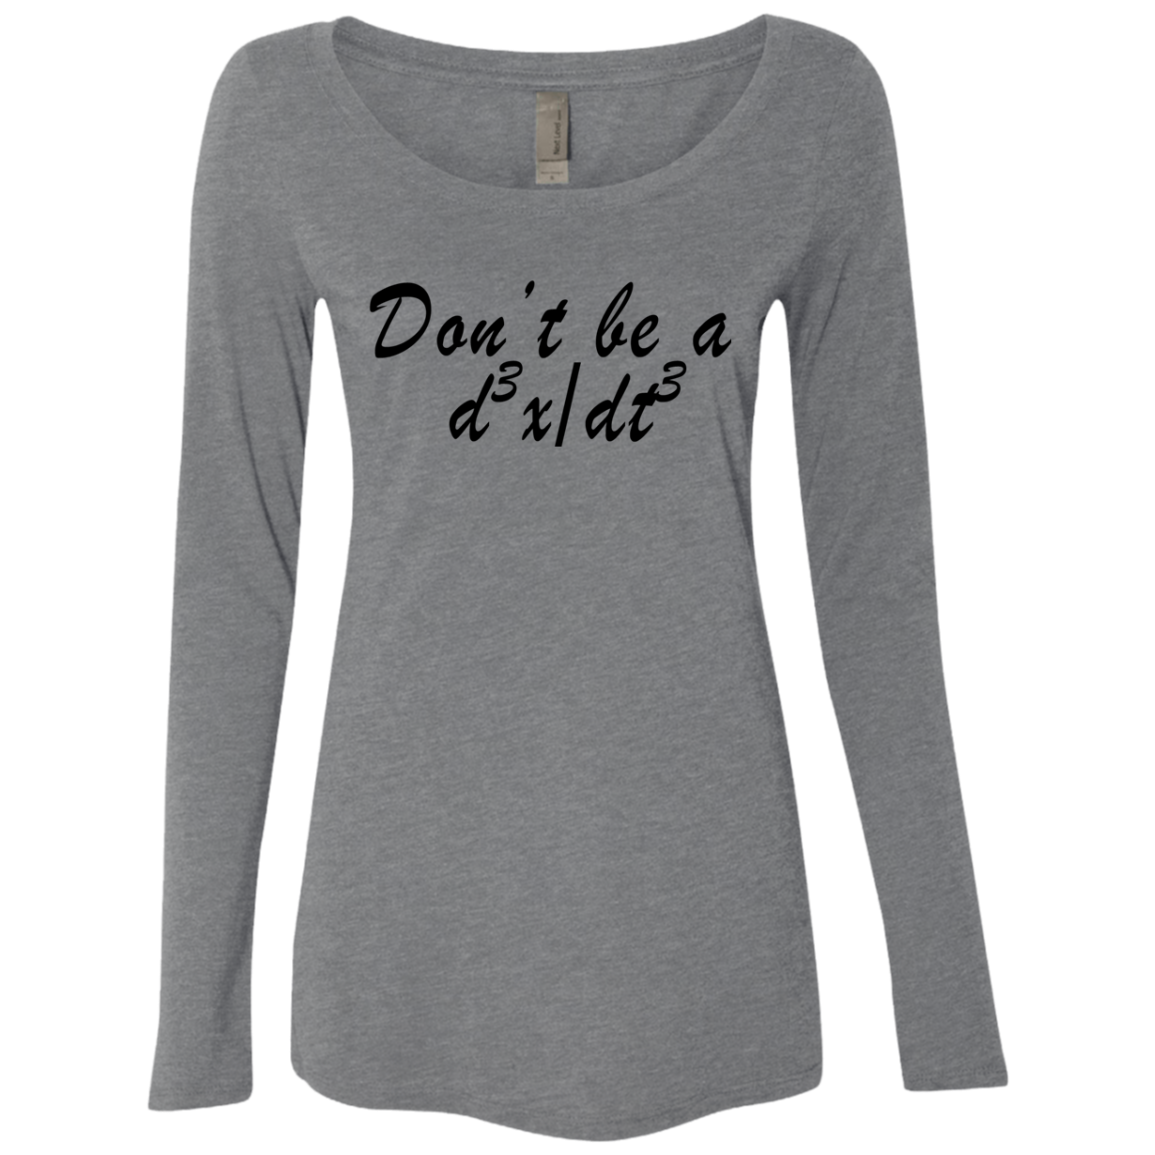 Don't Be a formula nerd Women's Long Sleeve Tee